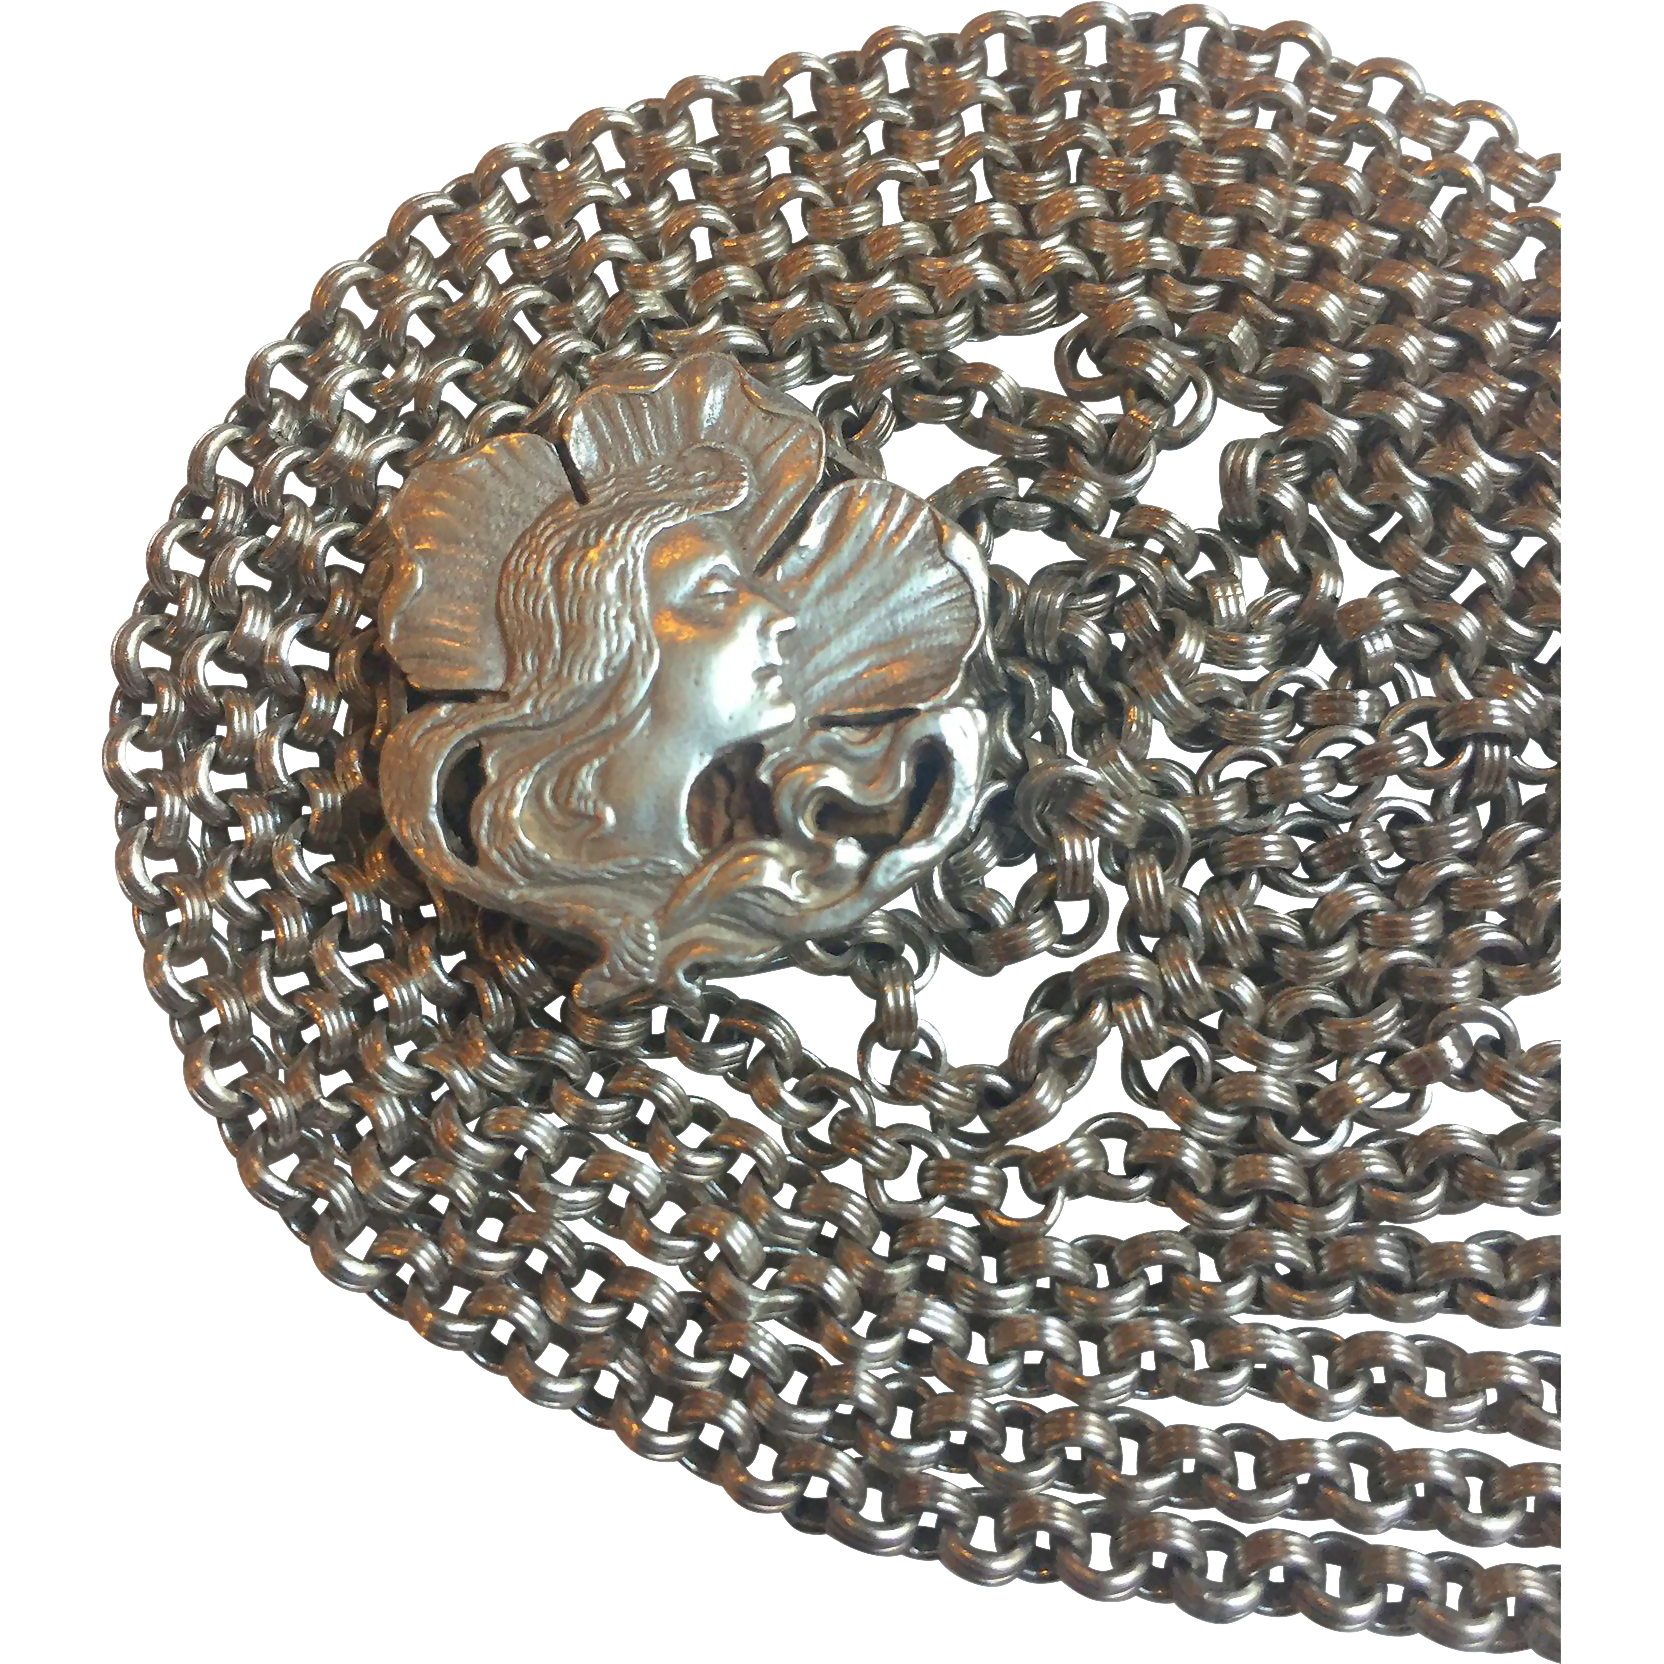 Gorgeous Heavy beautifully detailed French silver muff chain with slide 55g w. dog clasp